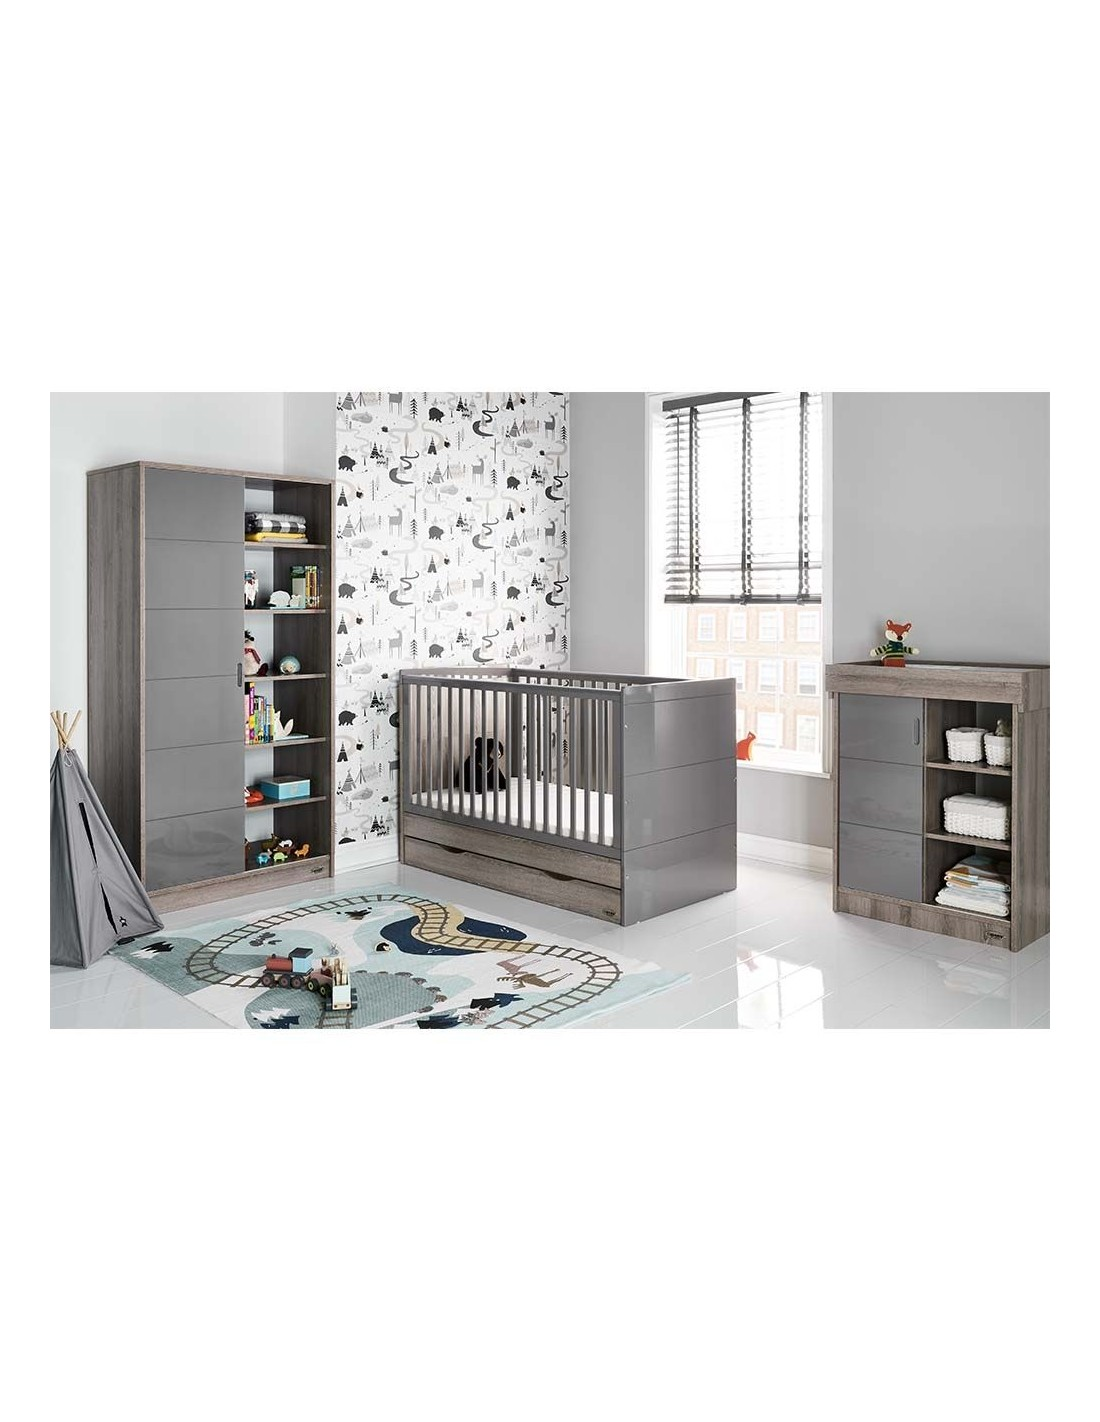 Eclipse Obaby Madrid Cot Bed and Multi Top Changer